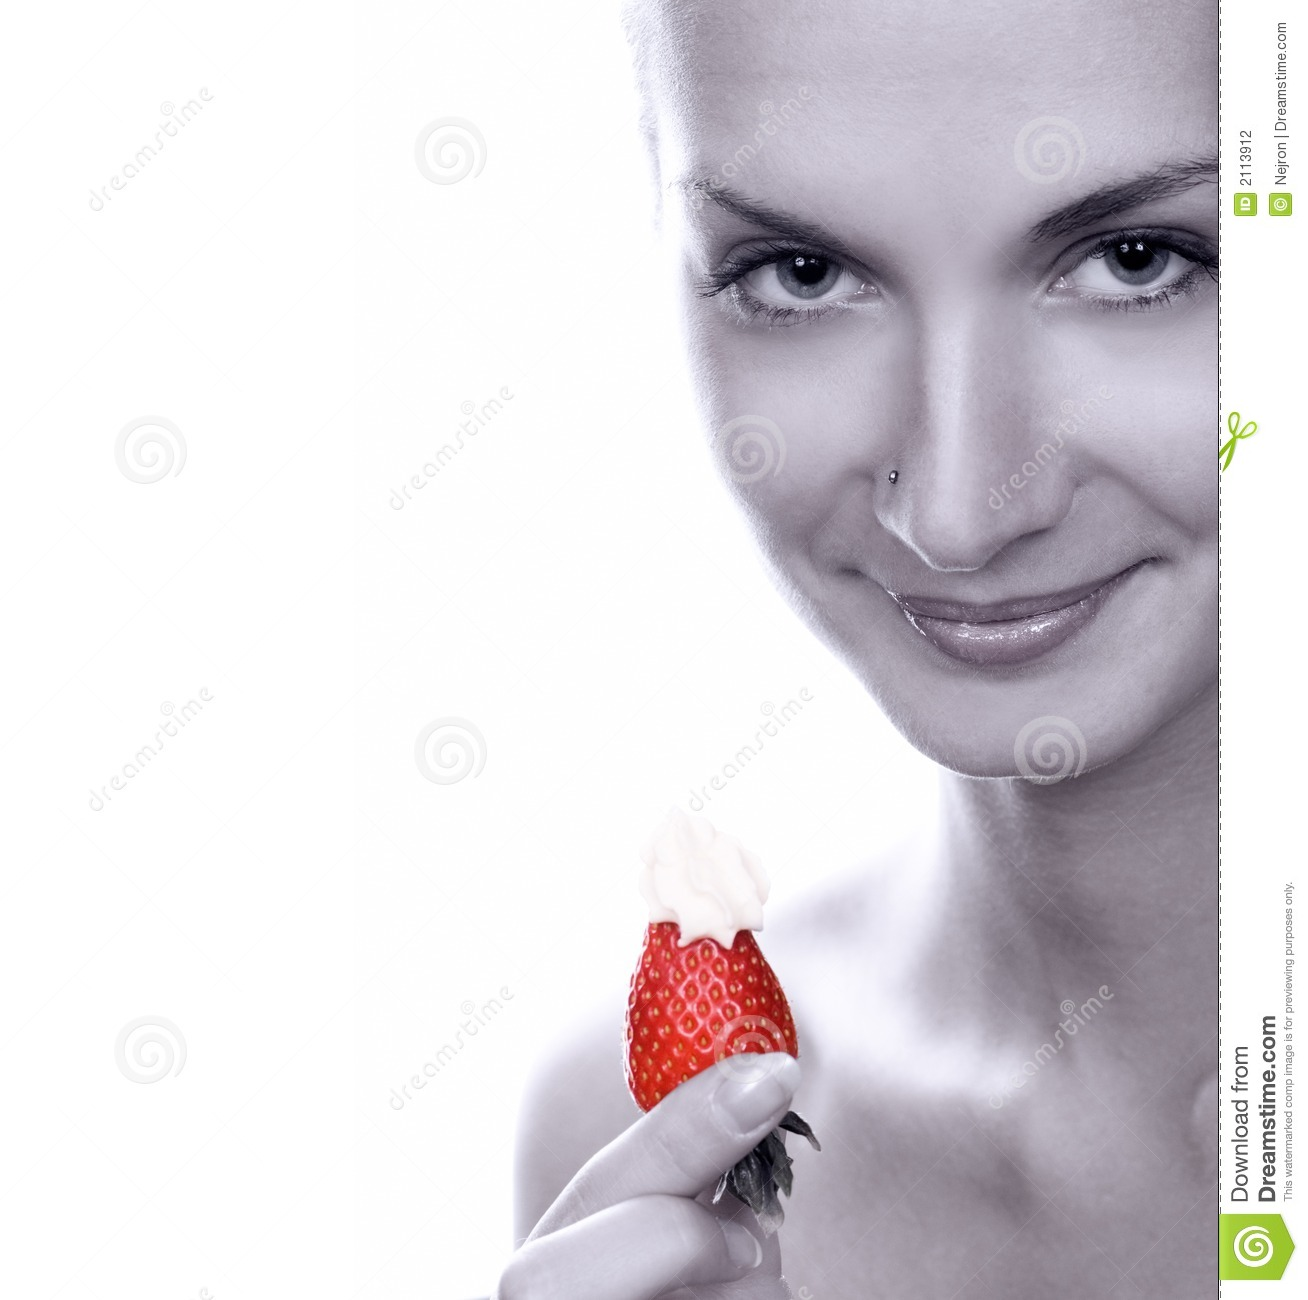 Jooker Lai Lai Lai Audio Theem Downlod: Monochrome Picture Of Young Girl With Juicy Strawberry